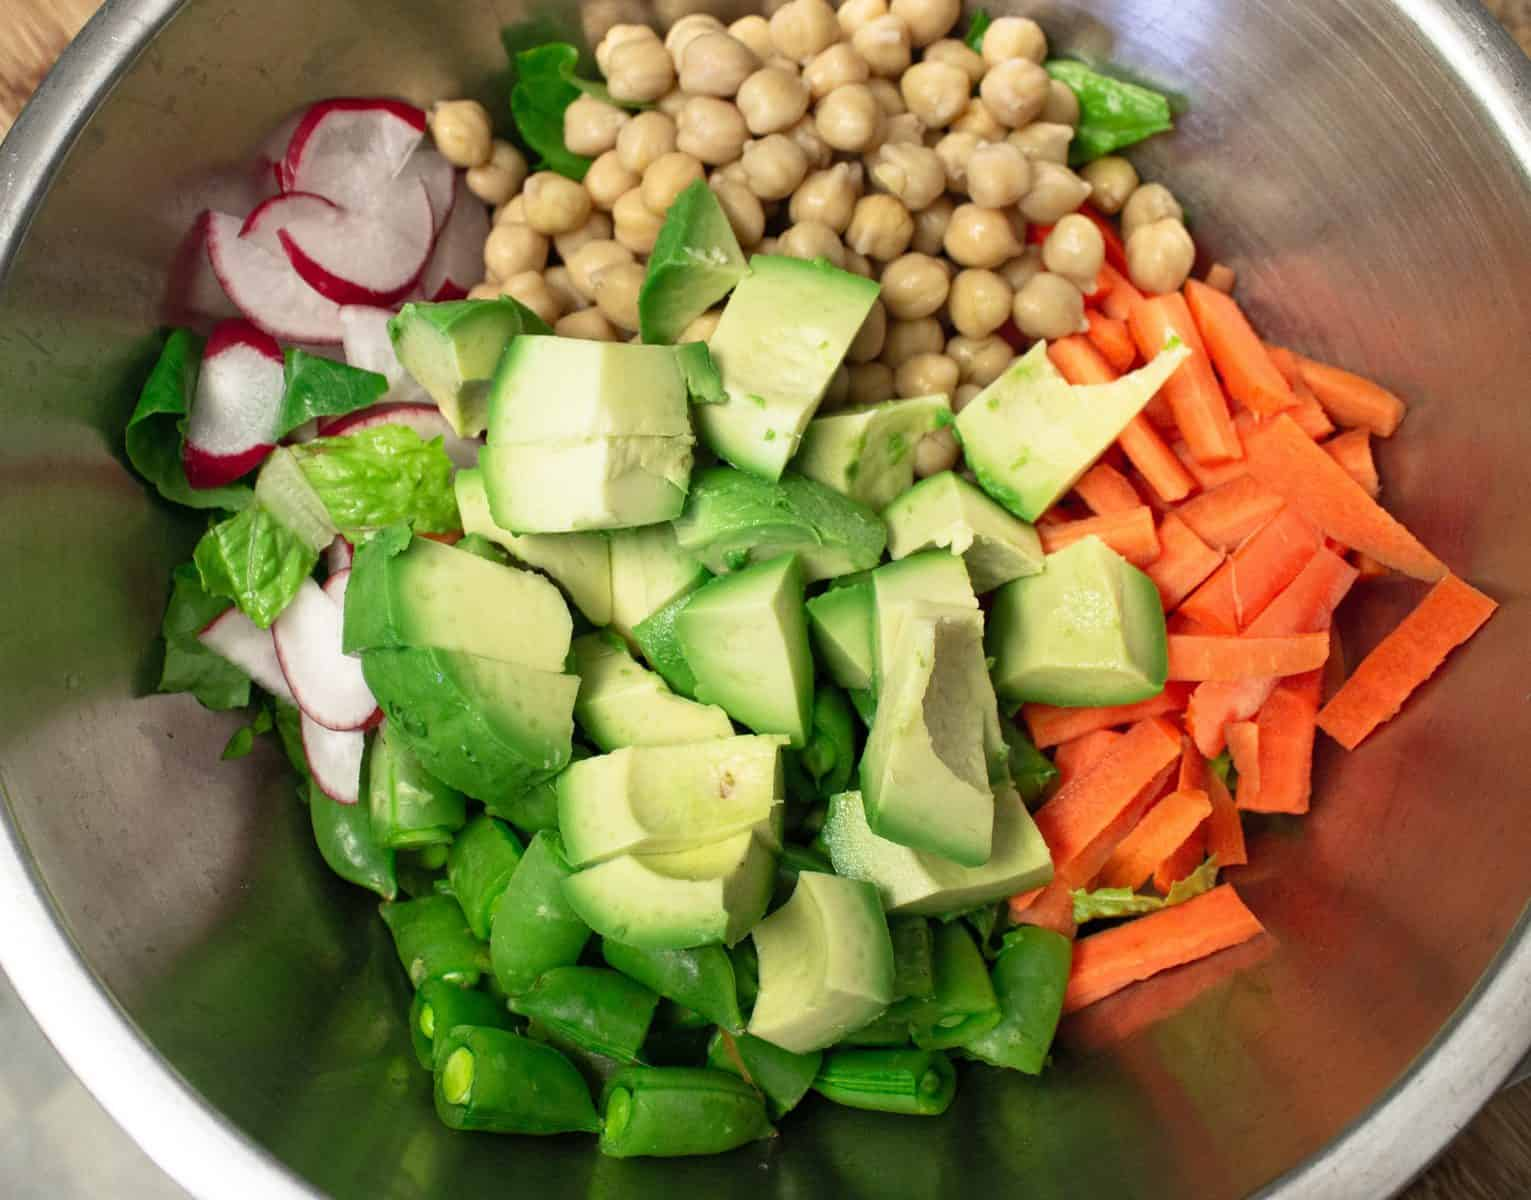 fresh veggies in metal bowl for salad. Vegetables include romaine lettuce, sliced radishes, chickpeas, chopped carrots, and chopped avocado